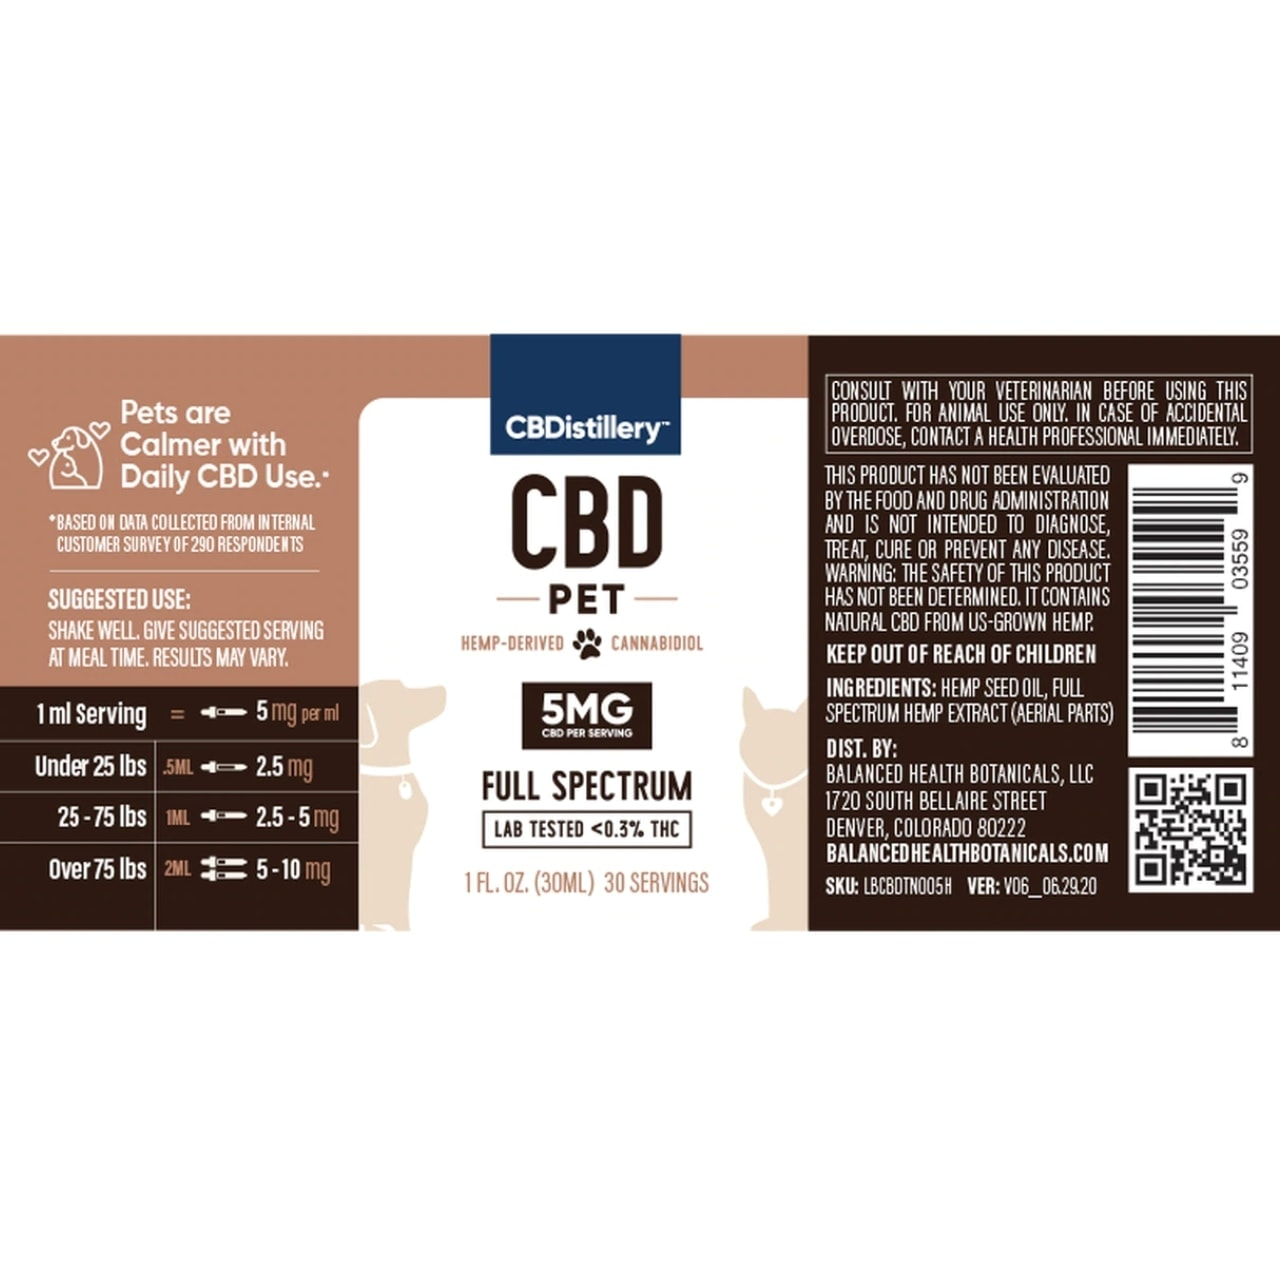 CBDistillery, CBD Pet Tincture, Full Spectrum, 1oz, 150mg of CBD2